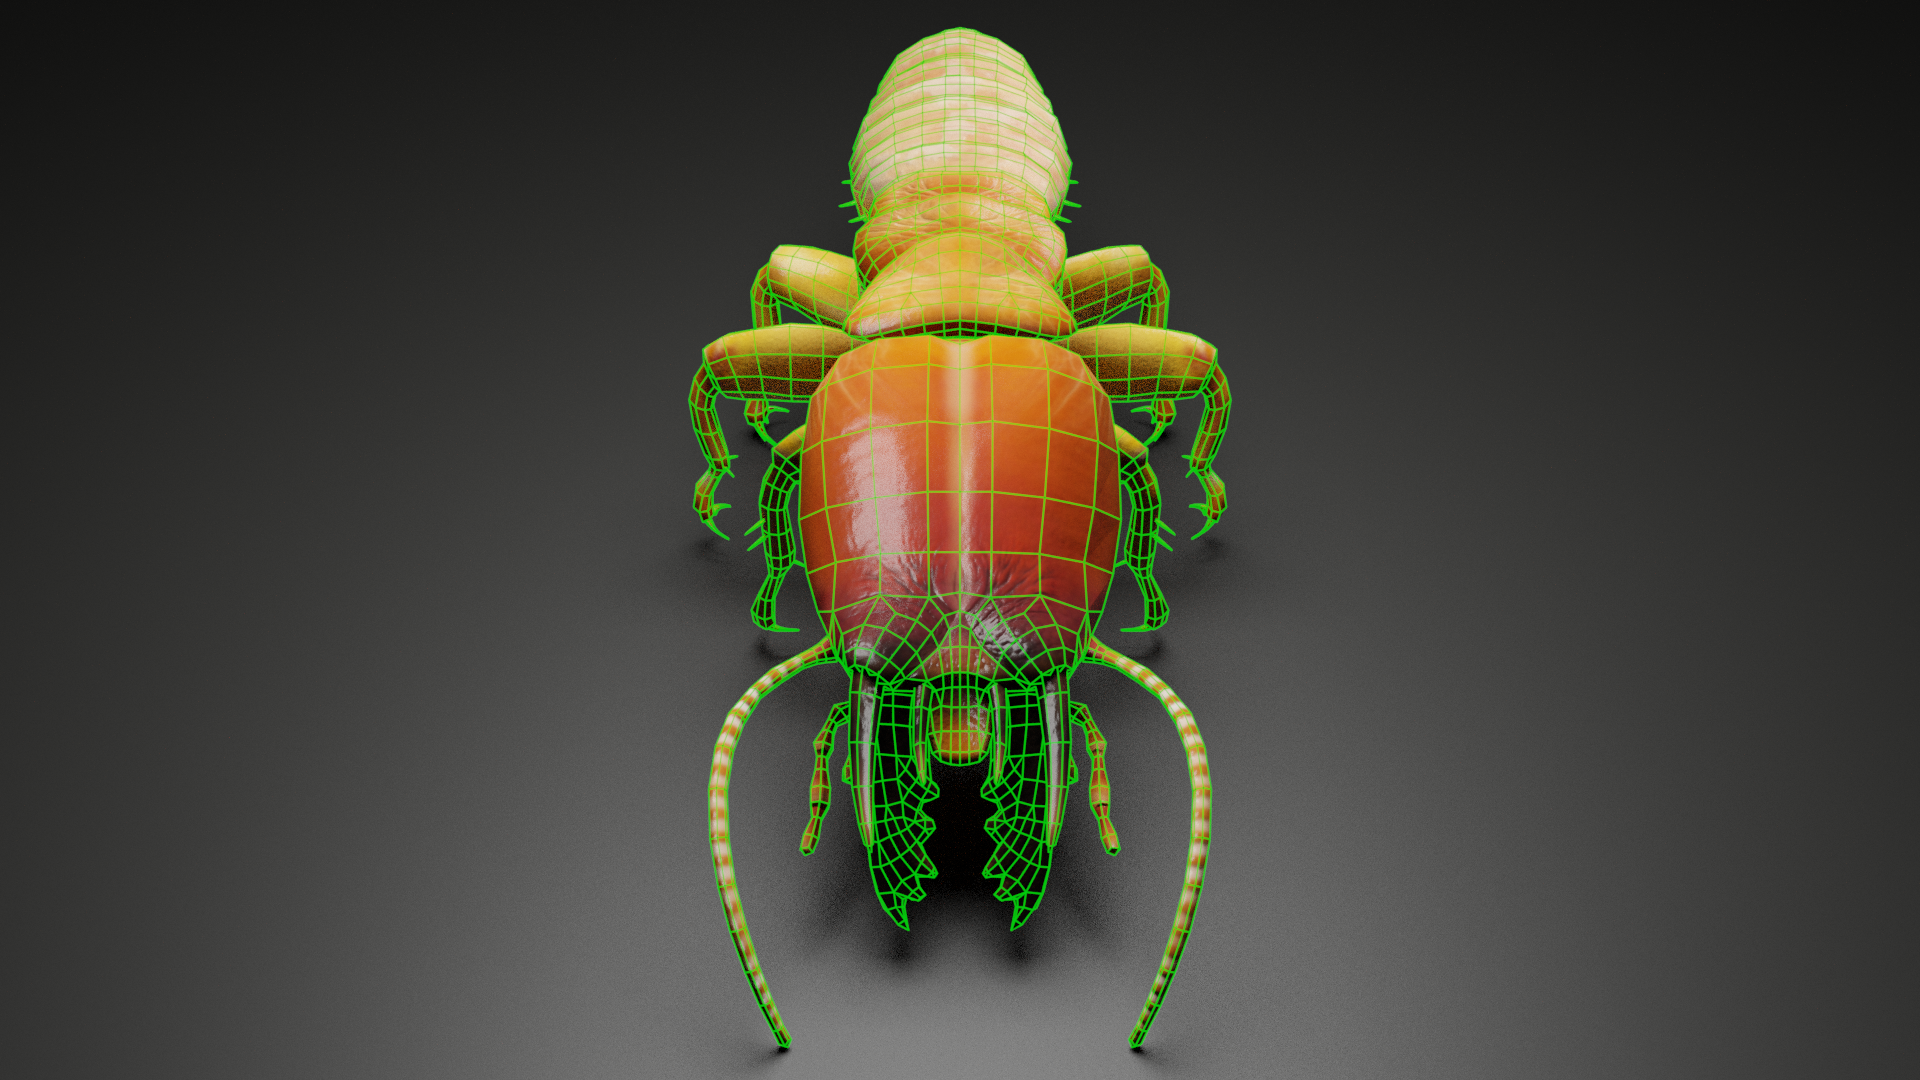 Termite Monster Front View Wireframe